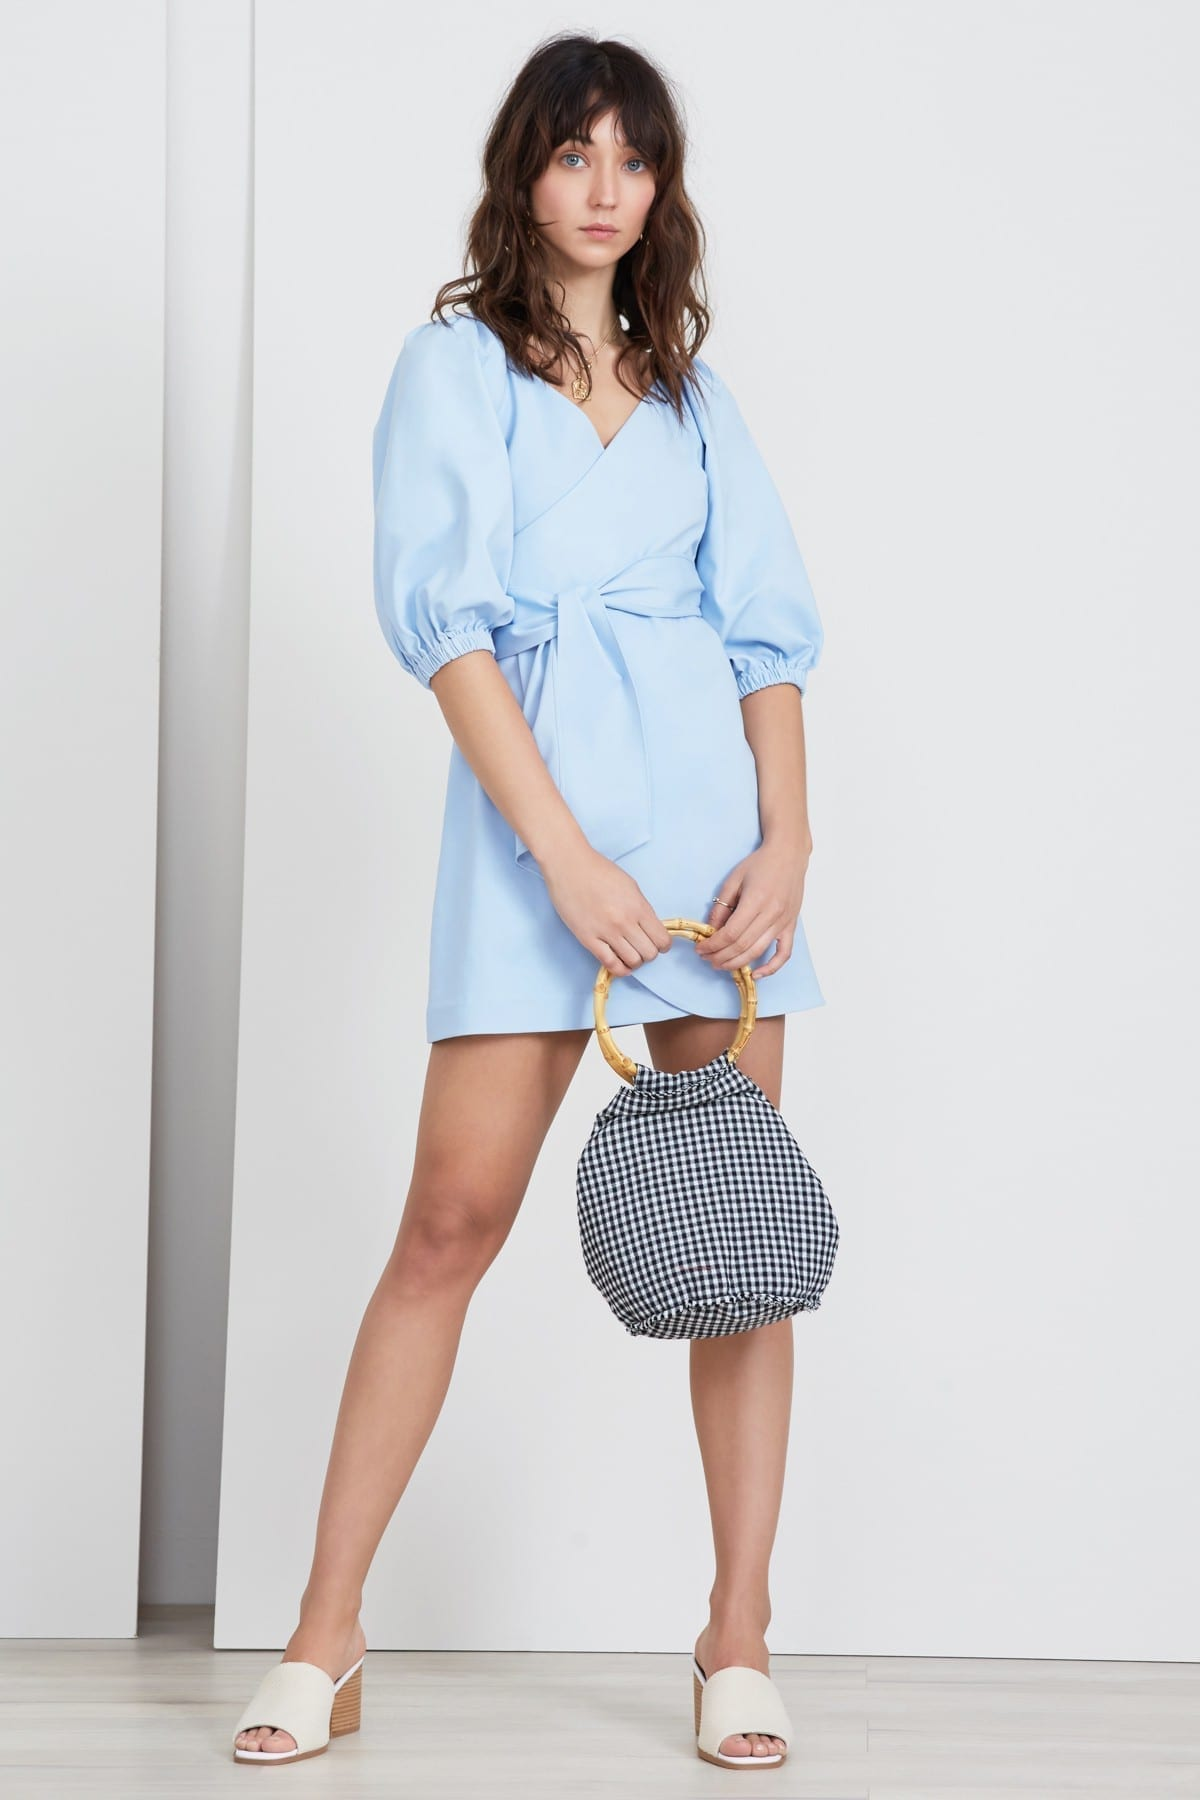 FINDERS KEEPERS Bridges Sky Blue Dress